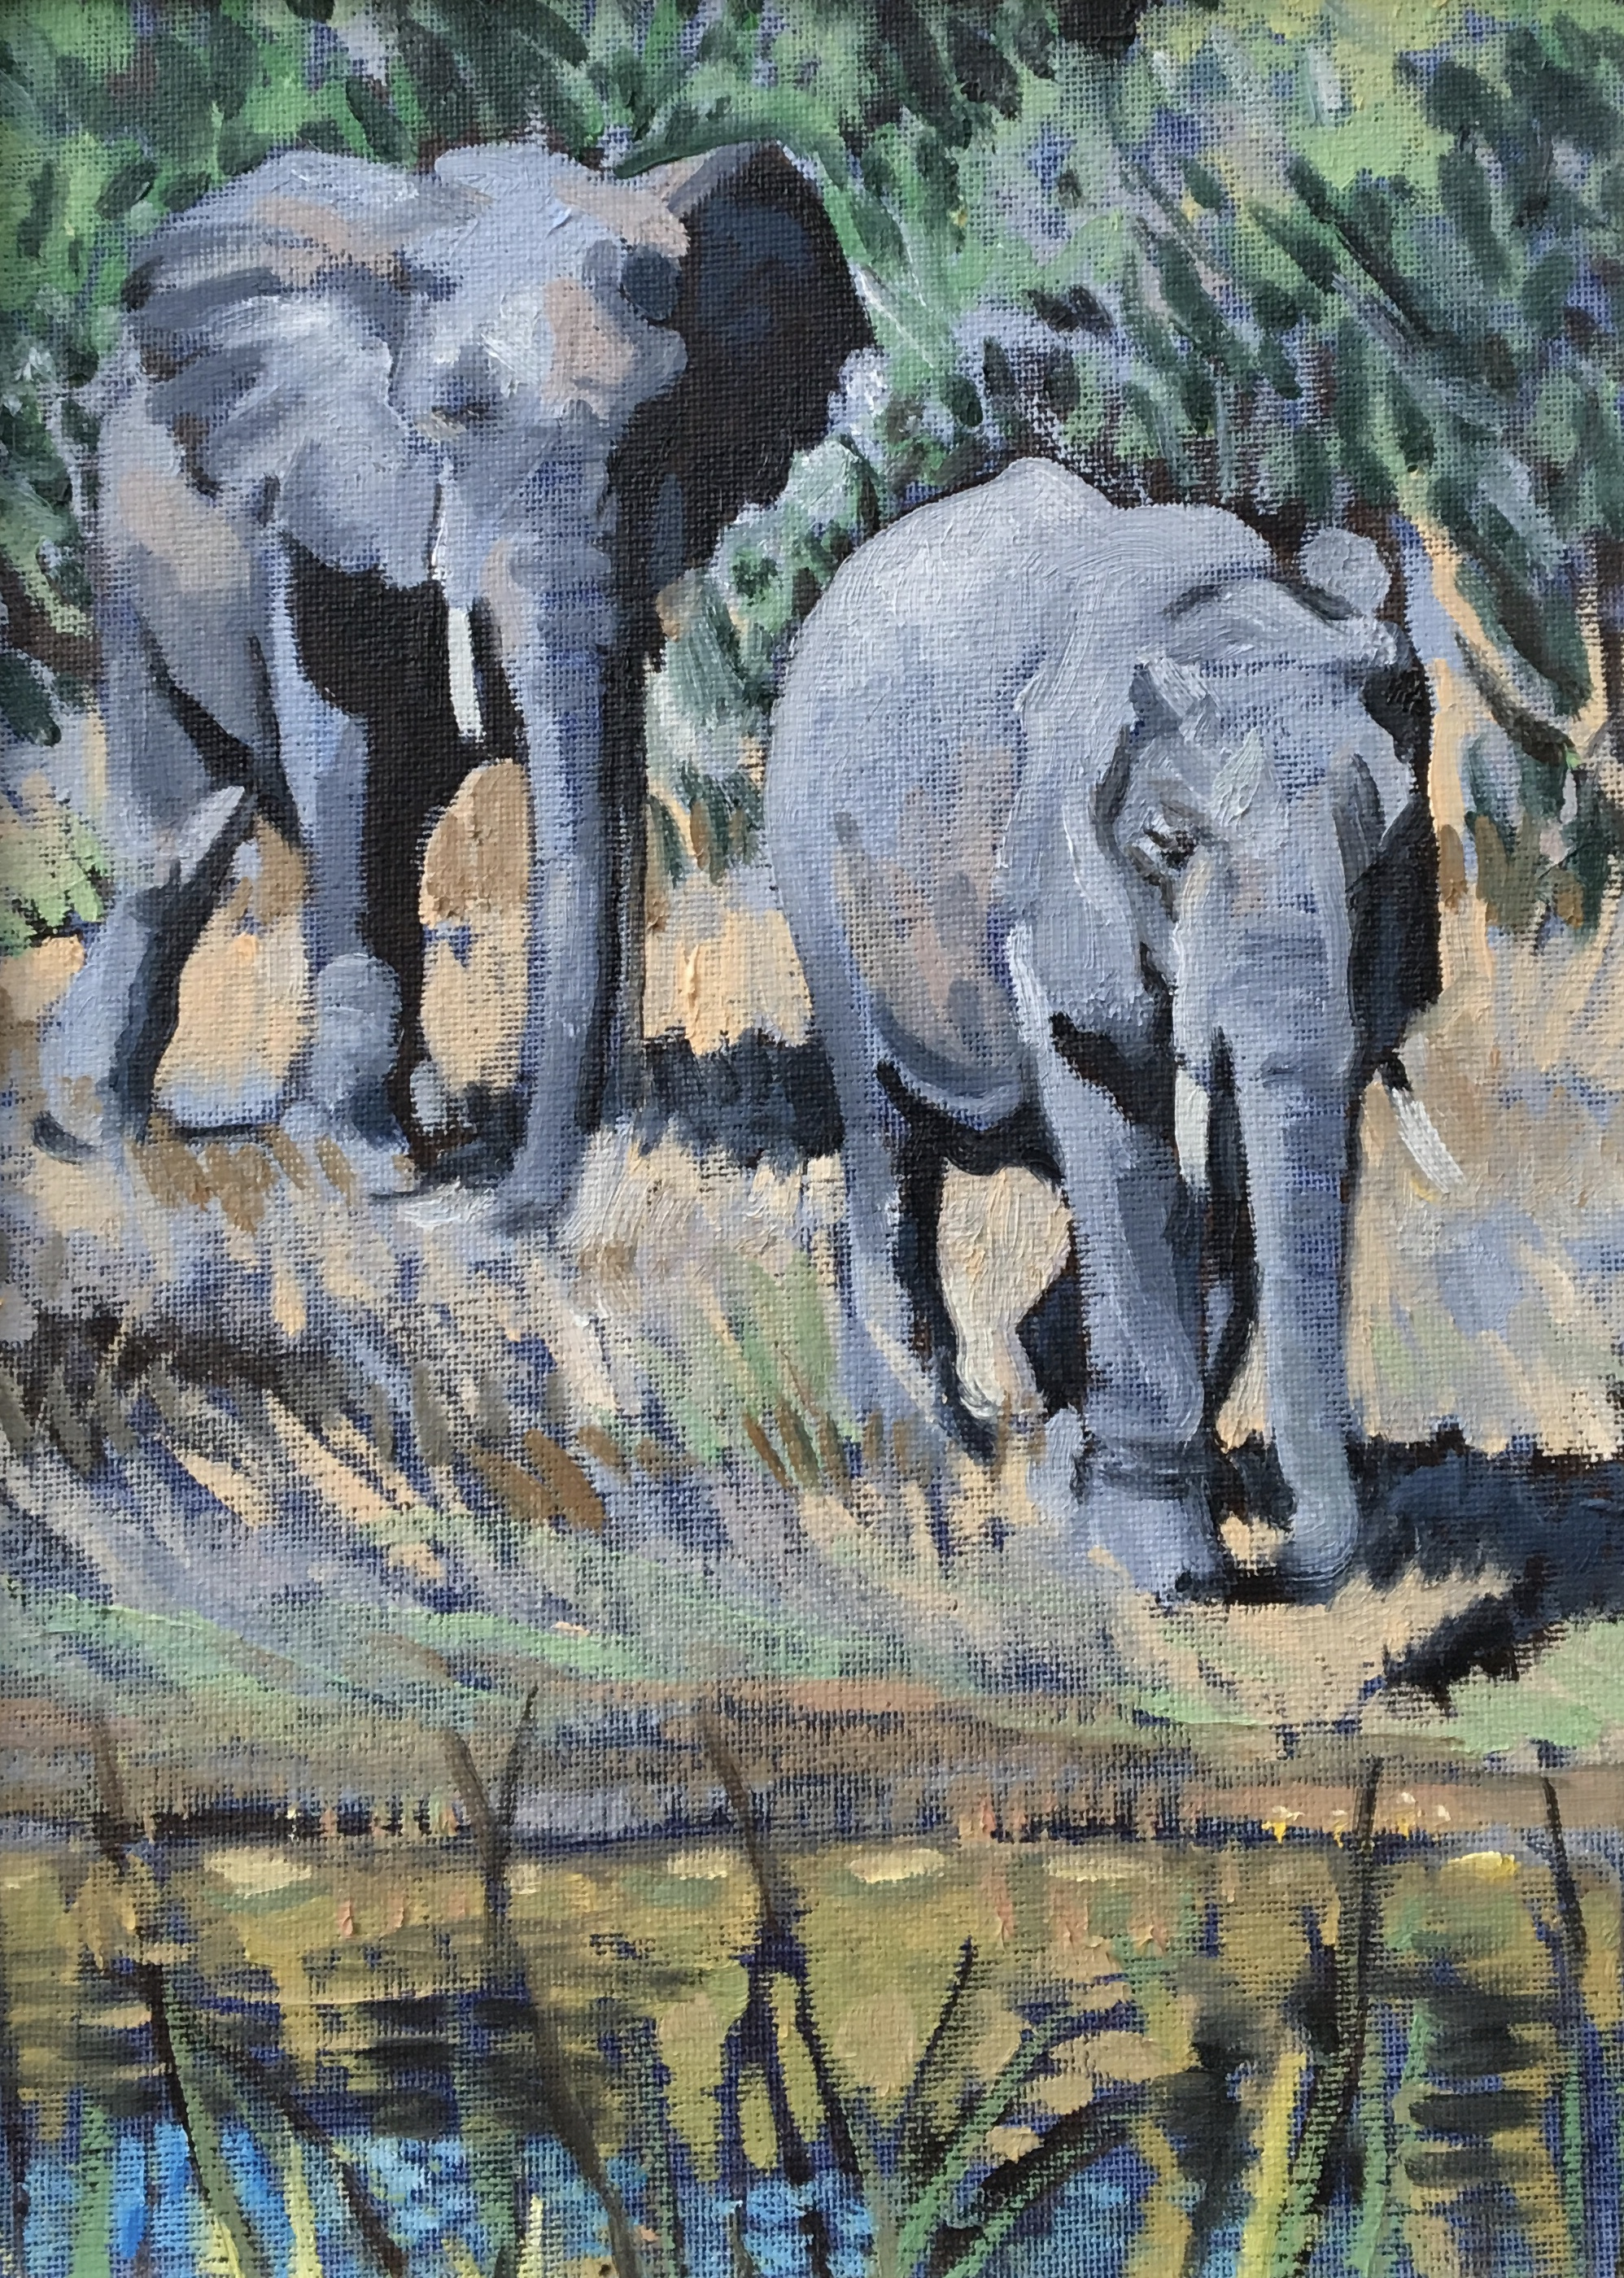 Elephants - Big 7